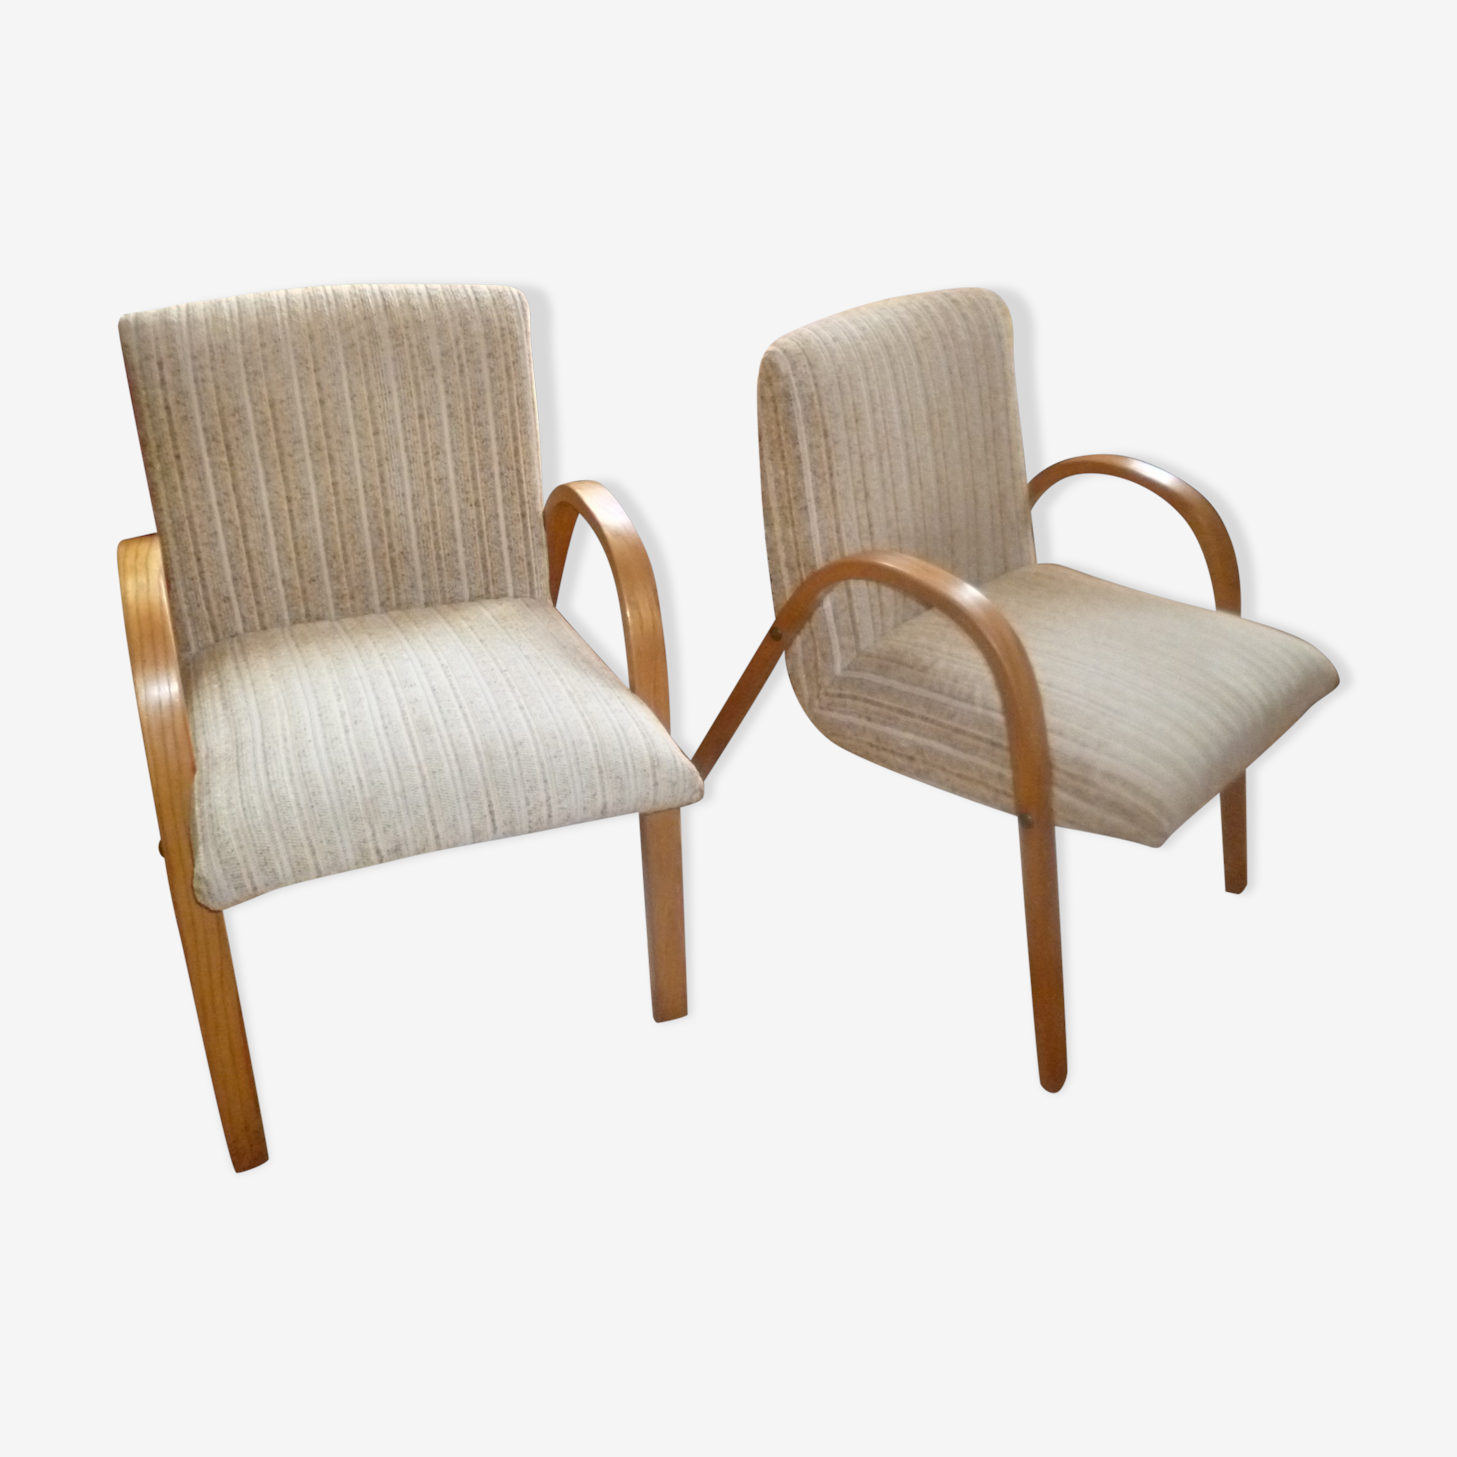 Set of 2 armchair style bow wood steiner vintage